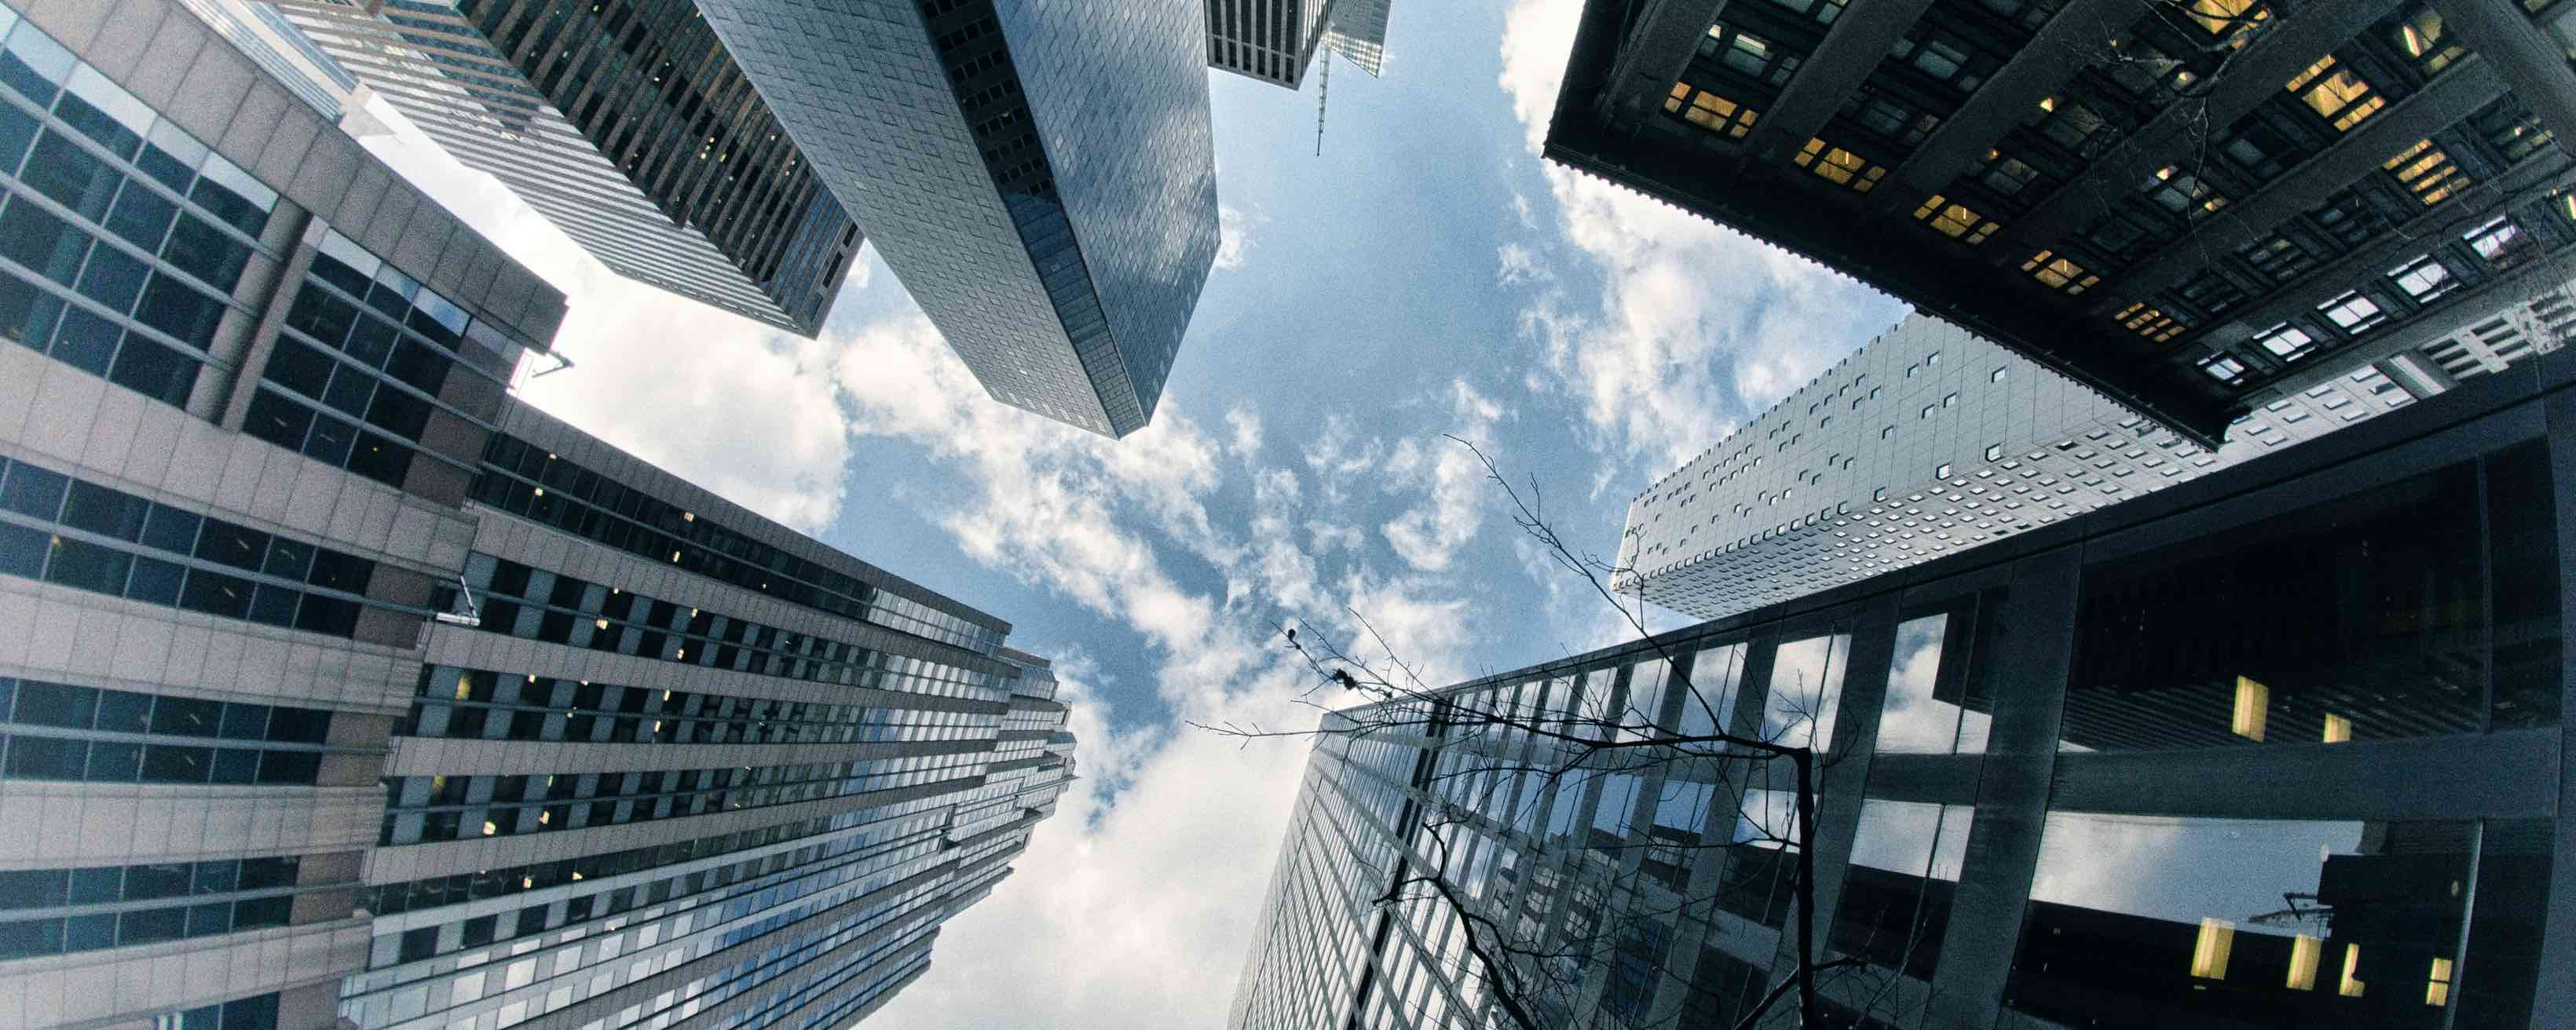 looking-up-at-tall-buildings